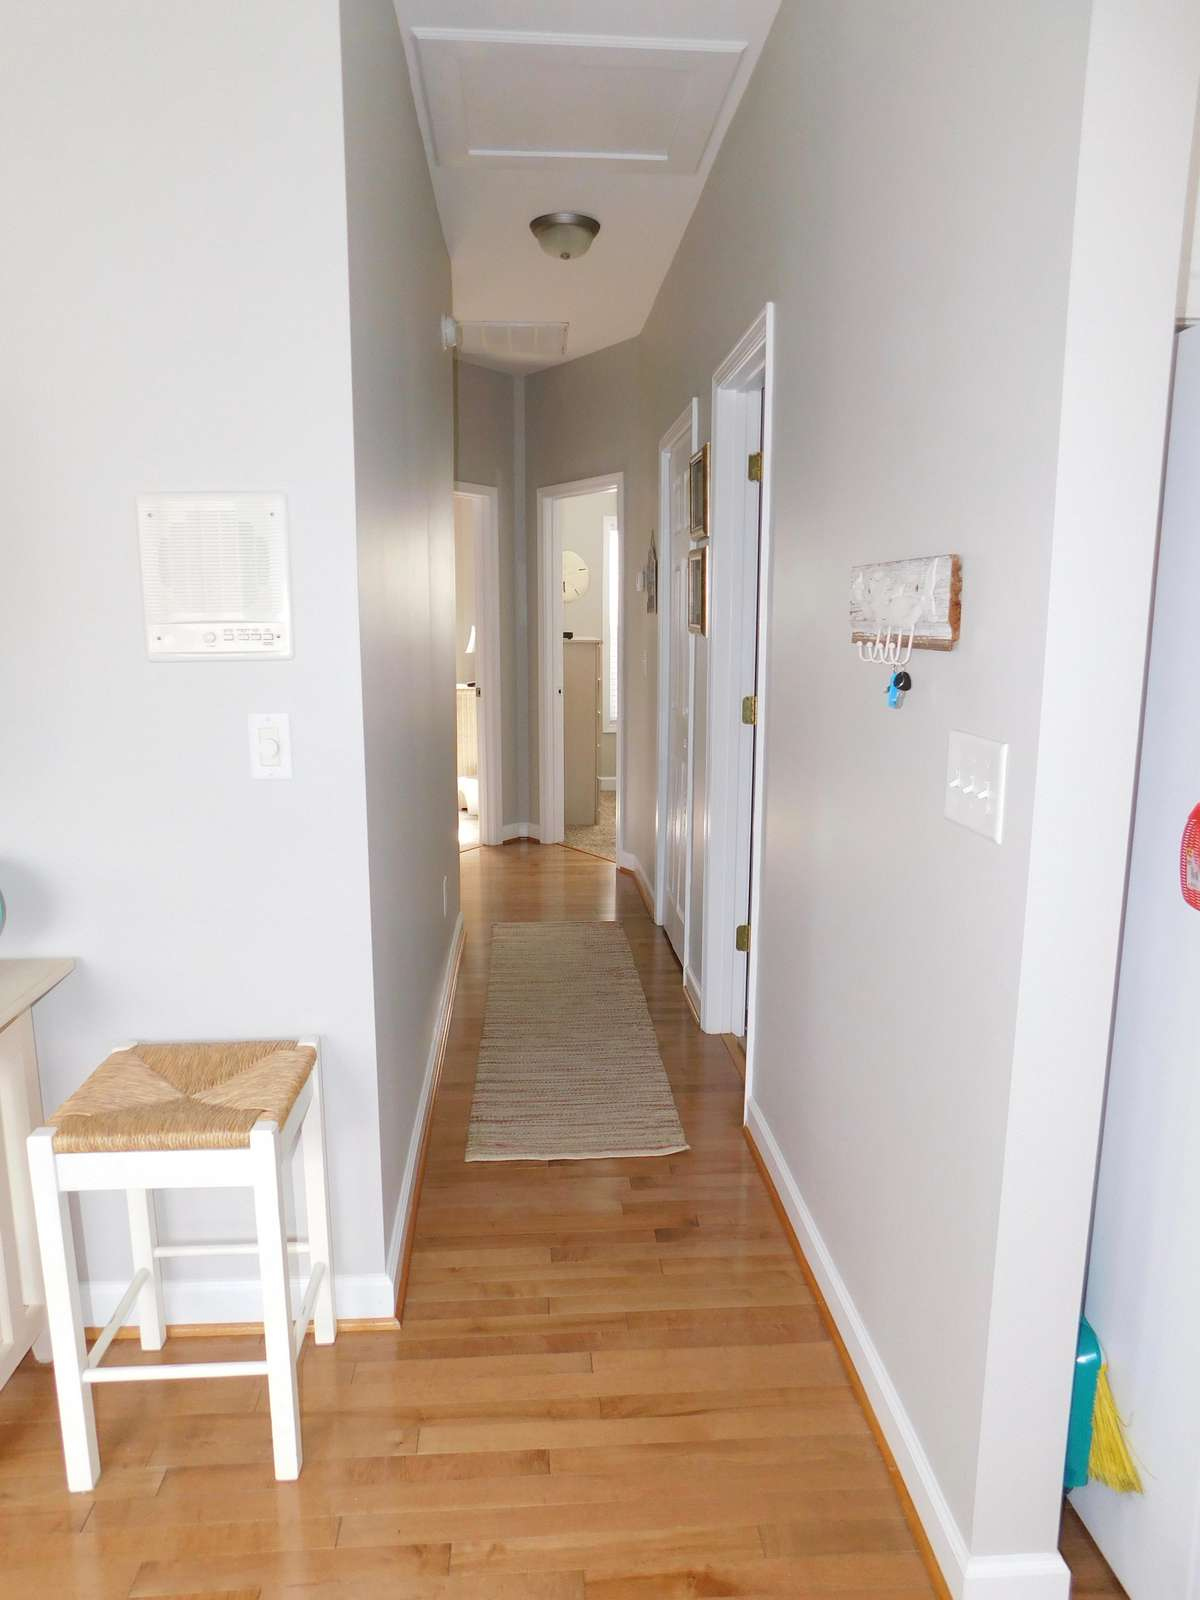 Hall looking to bedrooms